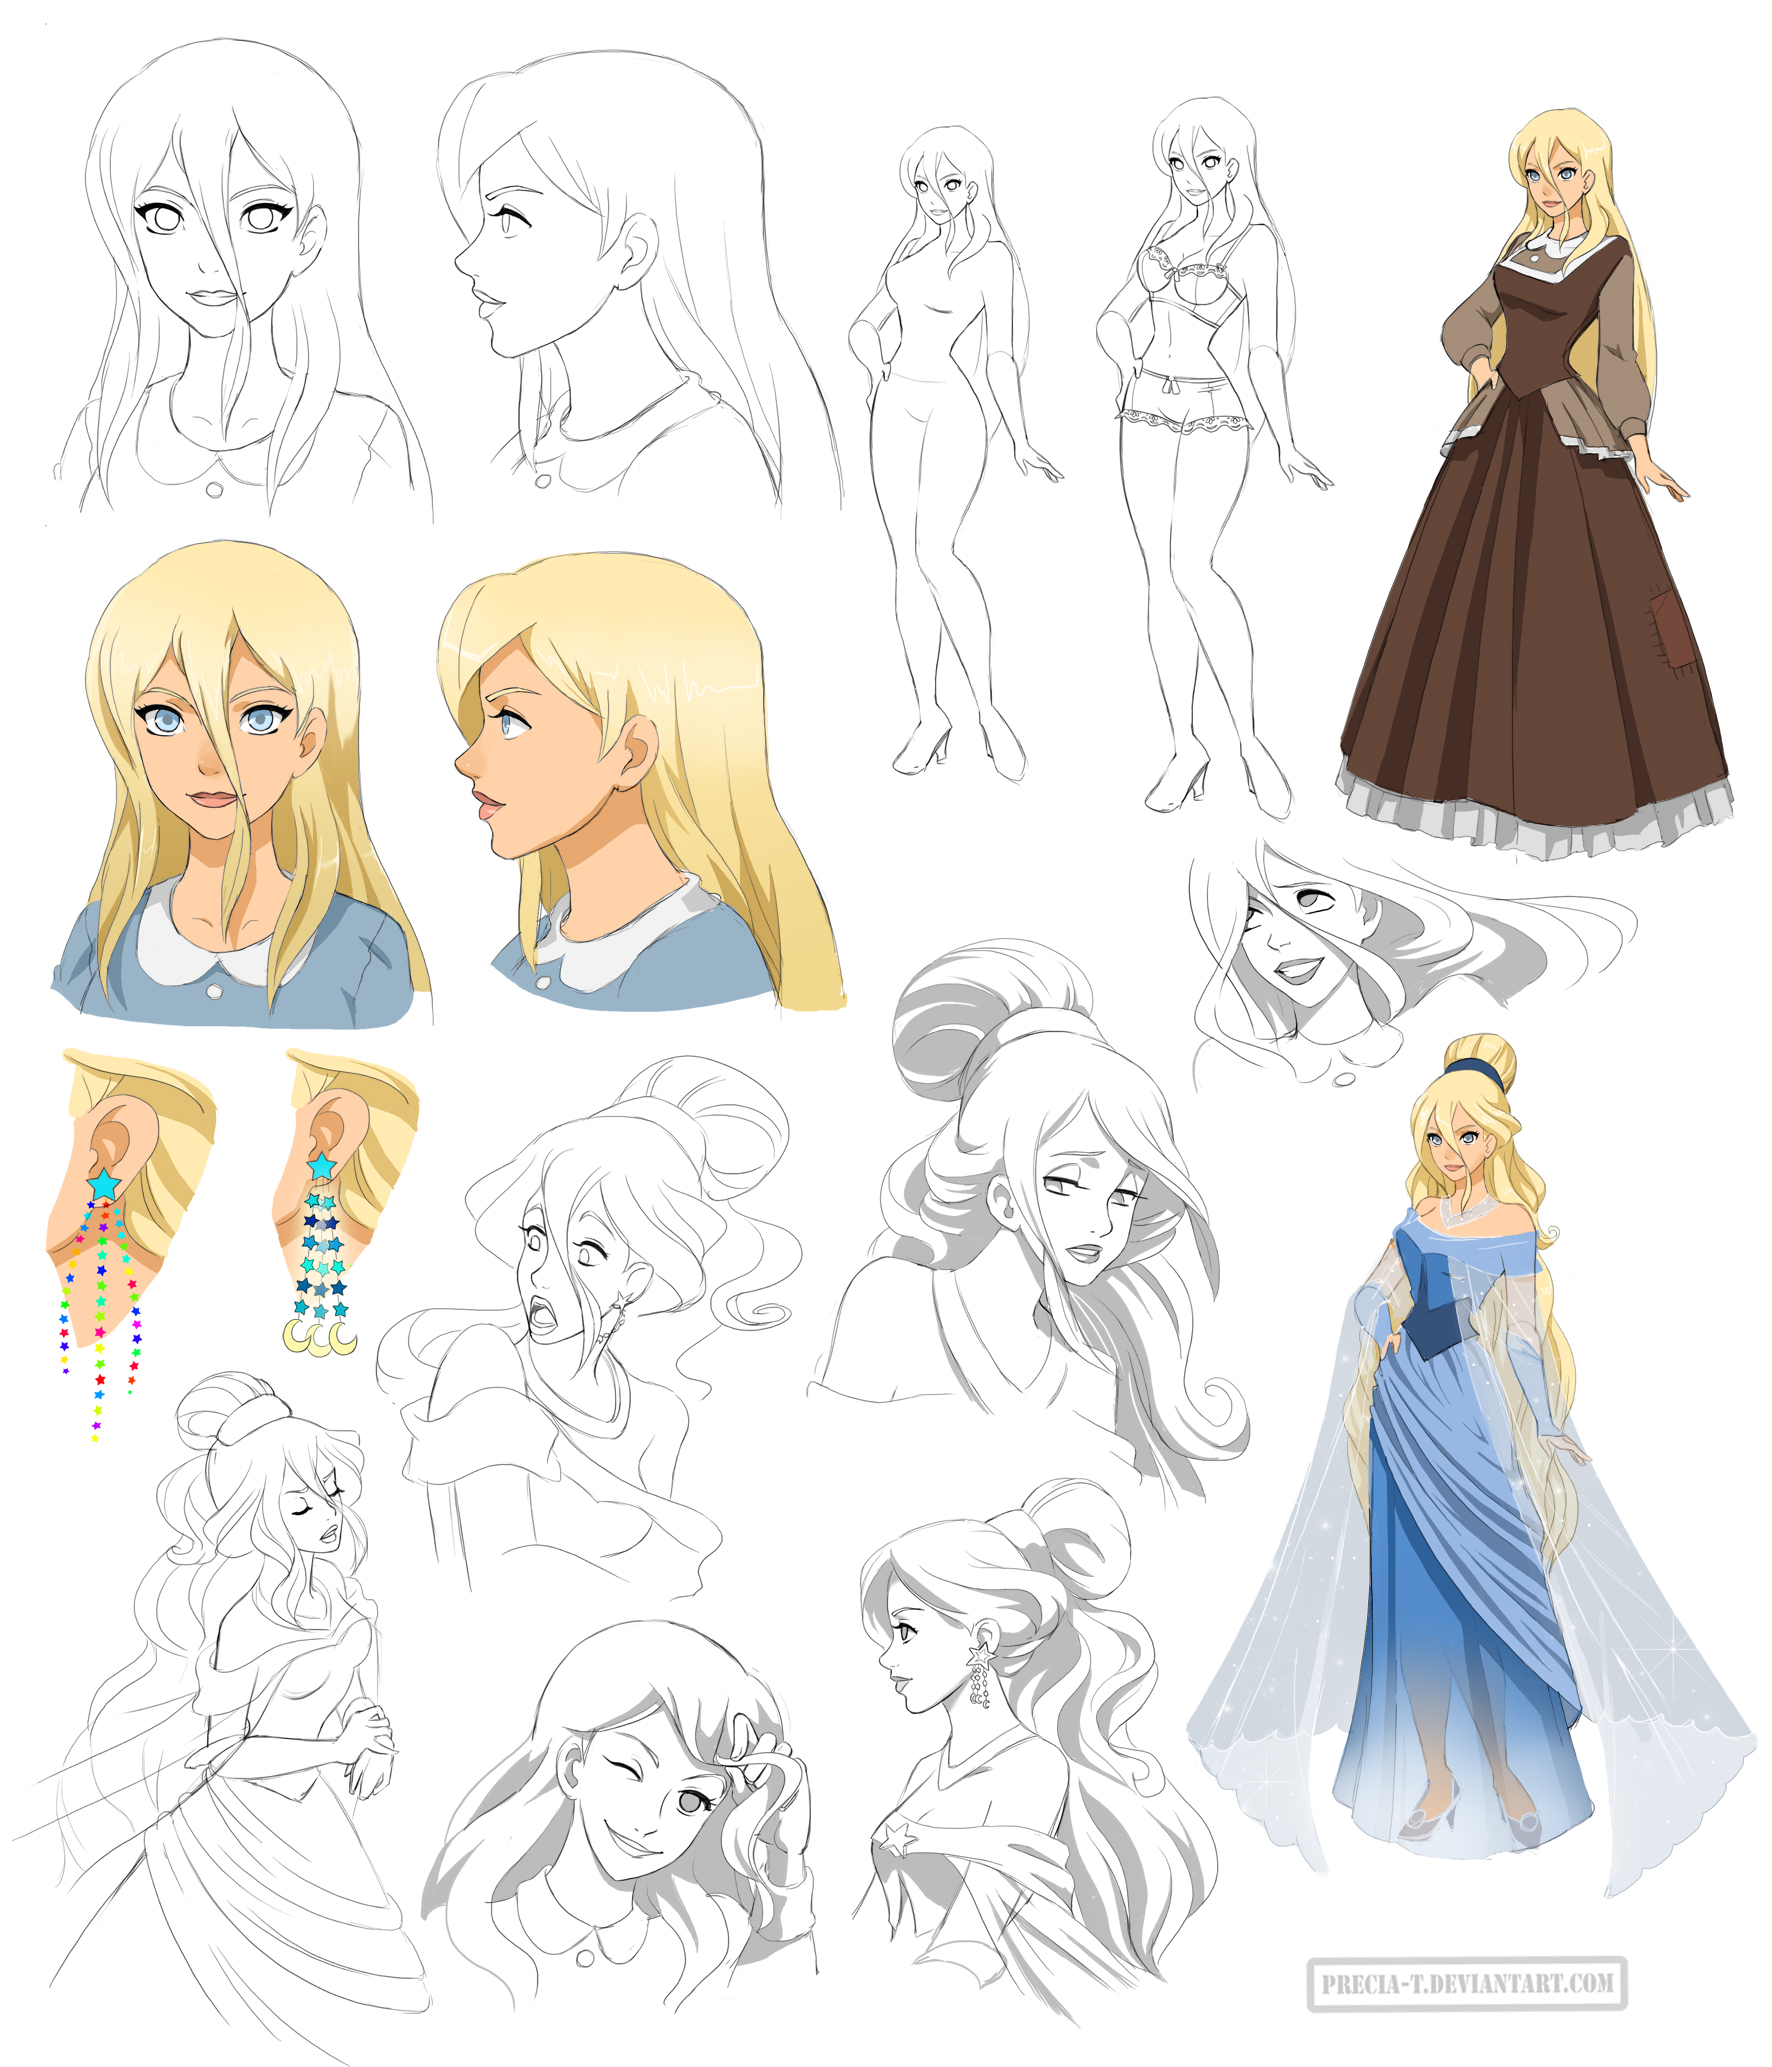 Character Design Commissions Deviantart : Disney princess design starina commission by precia t